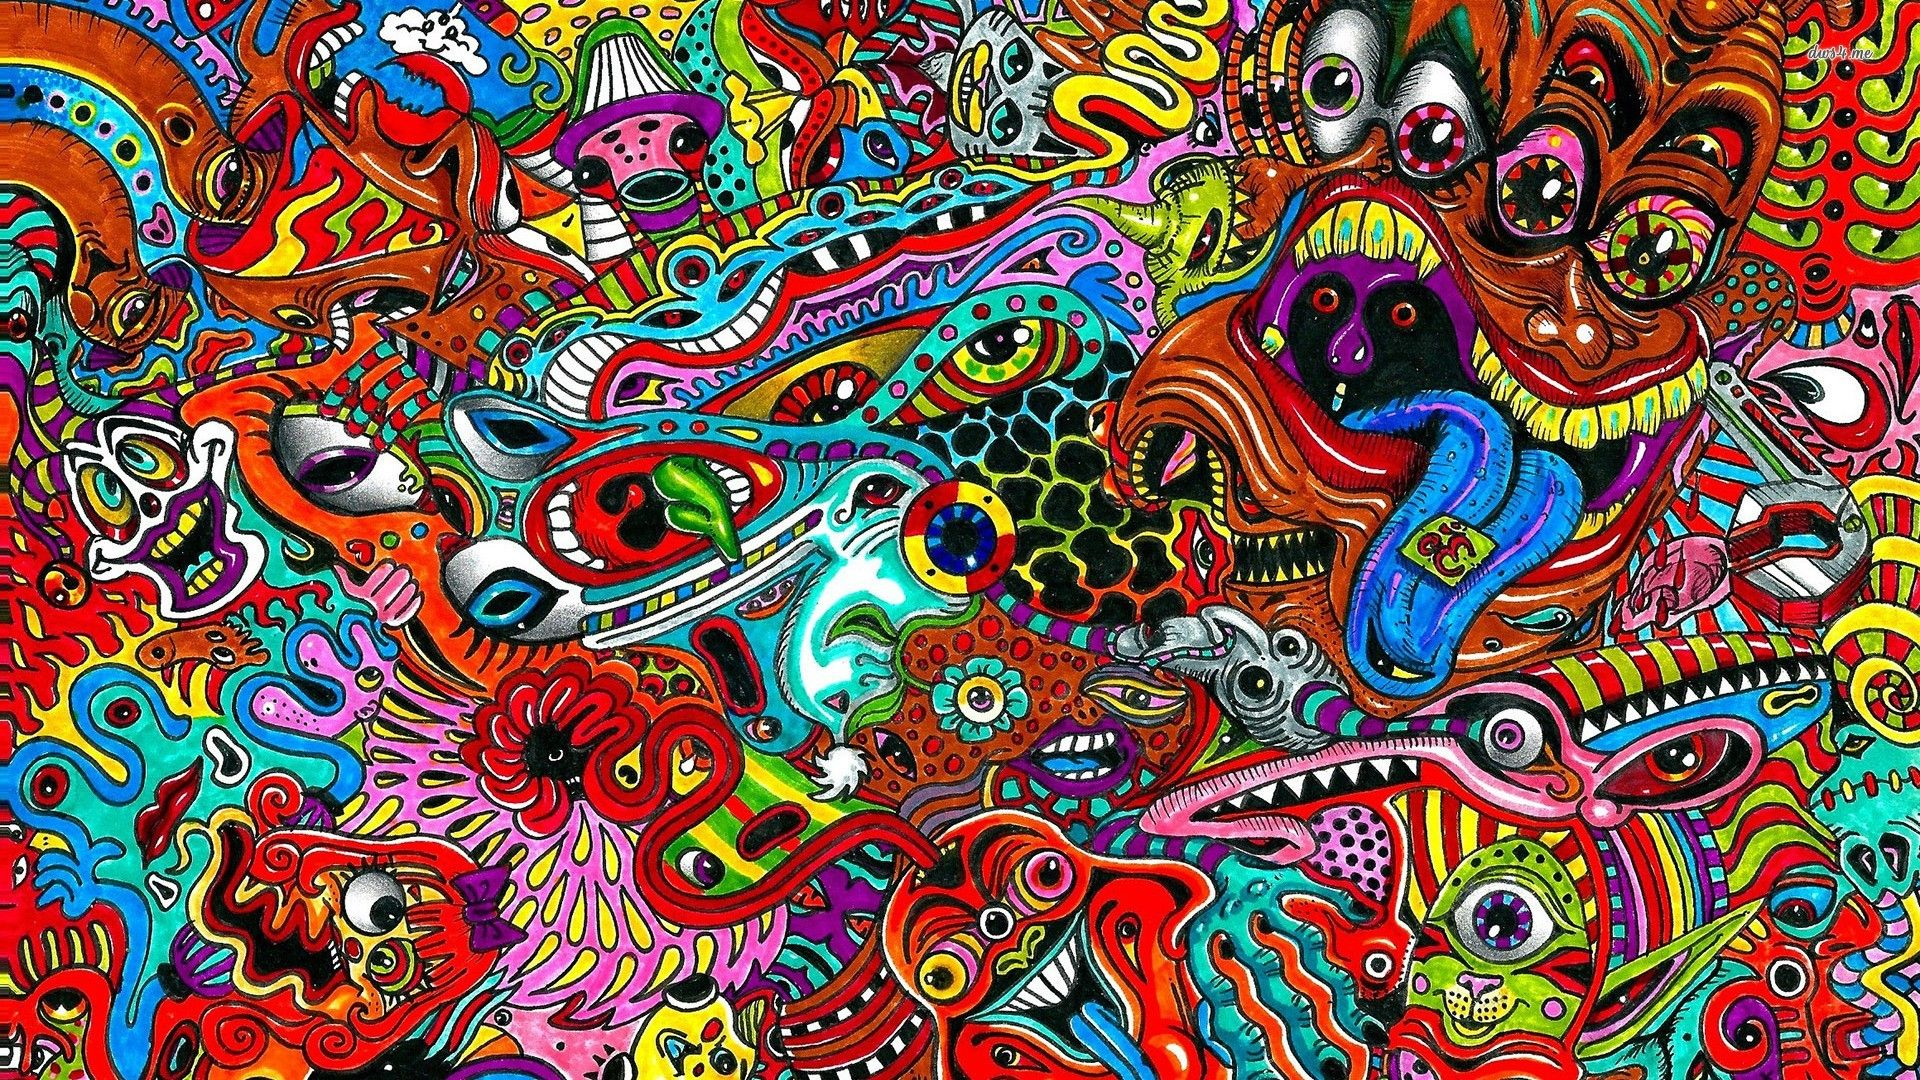 Psychedelic Background Wallpaper HD Psychedelic art